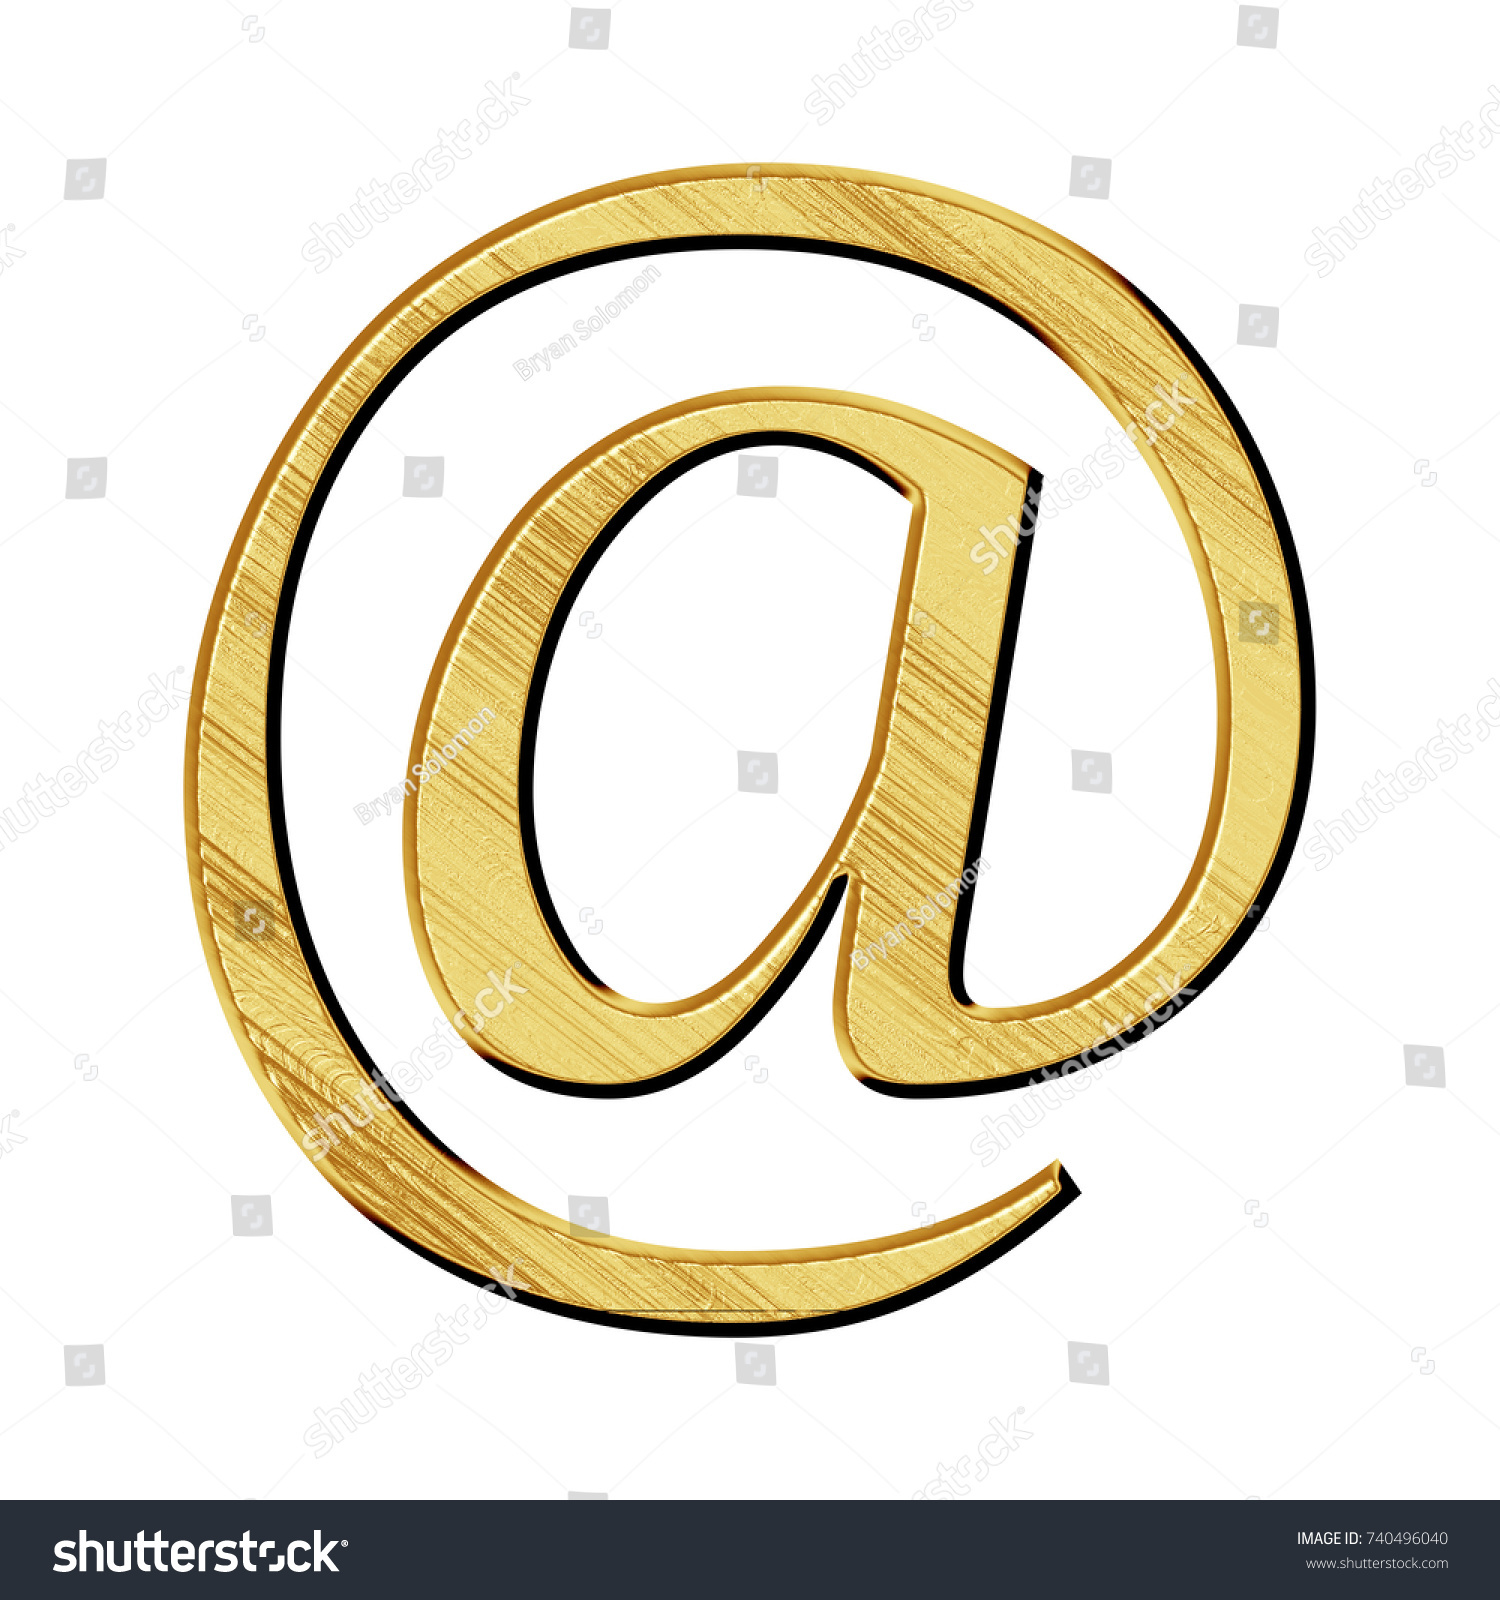 Etched Gold Metal Style At Sign Or Email Address Symbol In A 3d